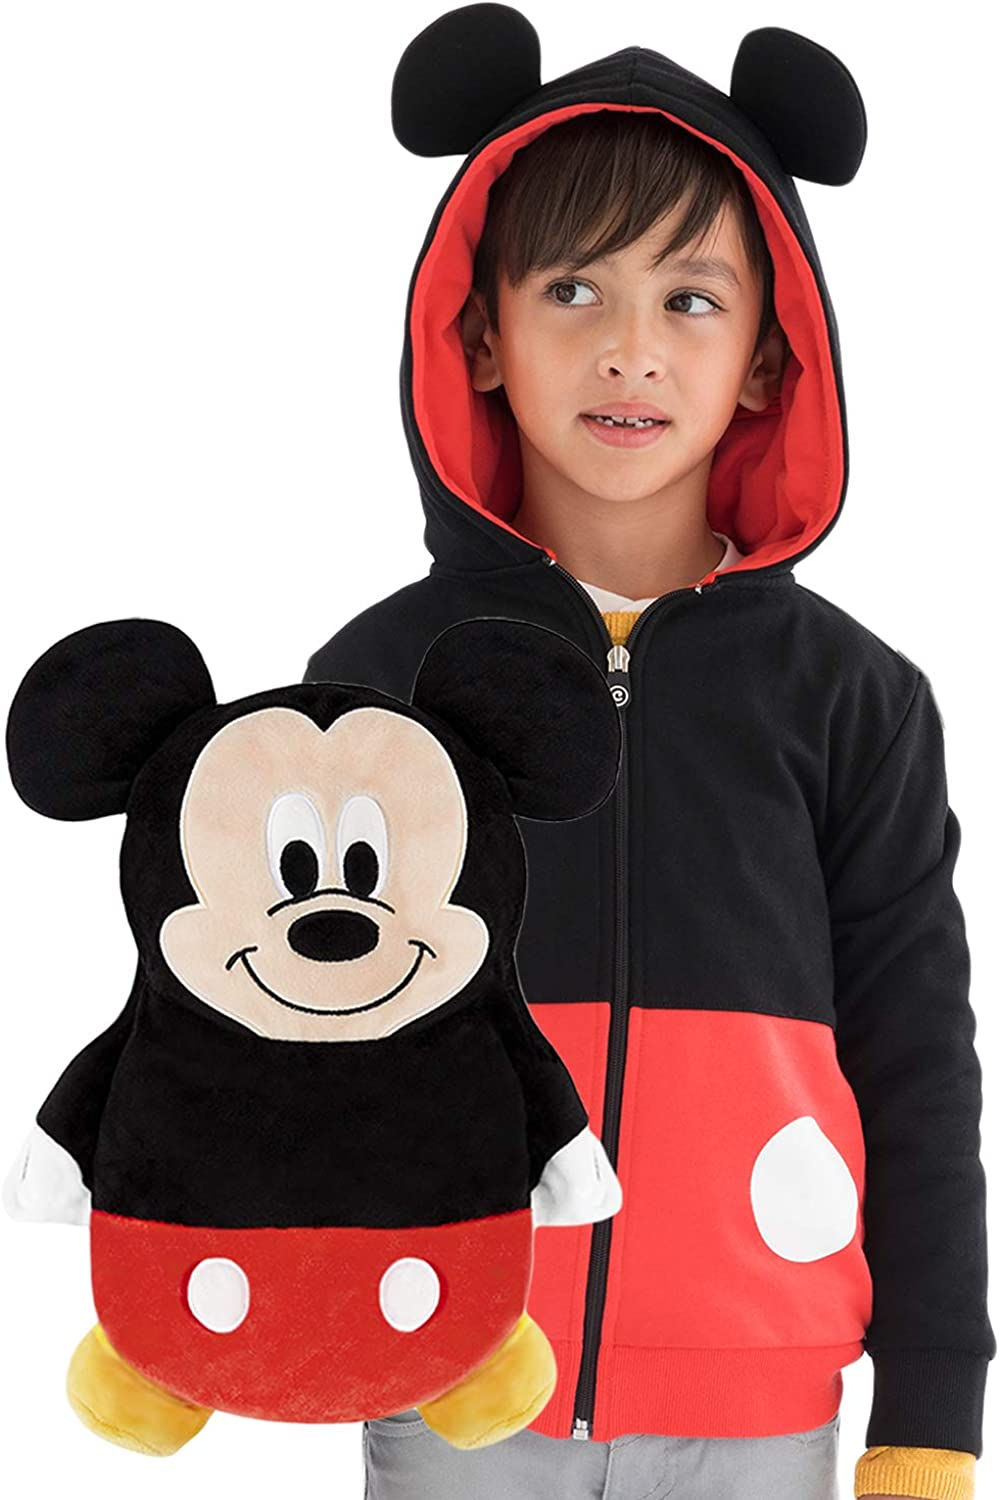 Cubcoats Mickey Mouse - 2-in-1 Transforming Hoodie and Soft Plushie - Red and Black